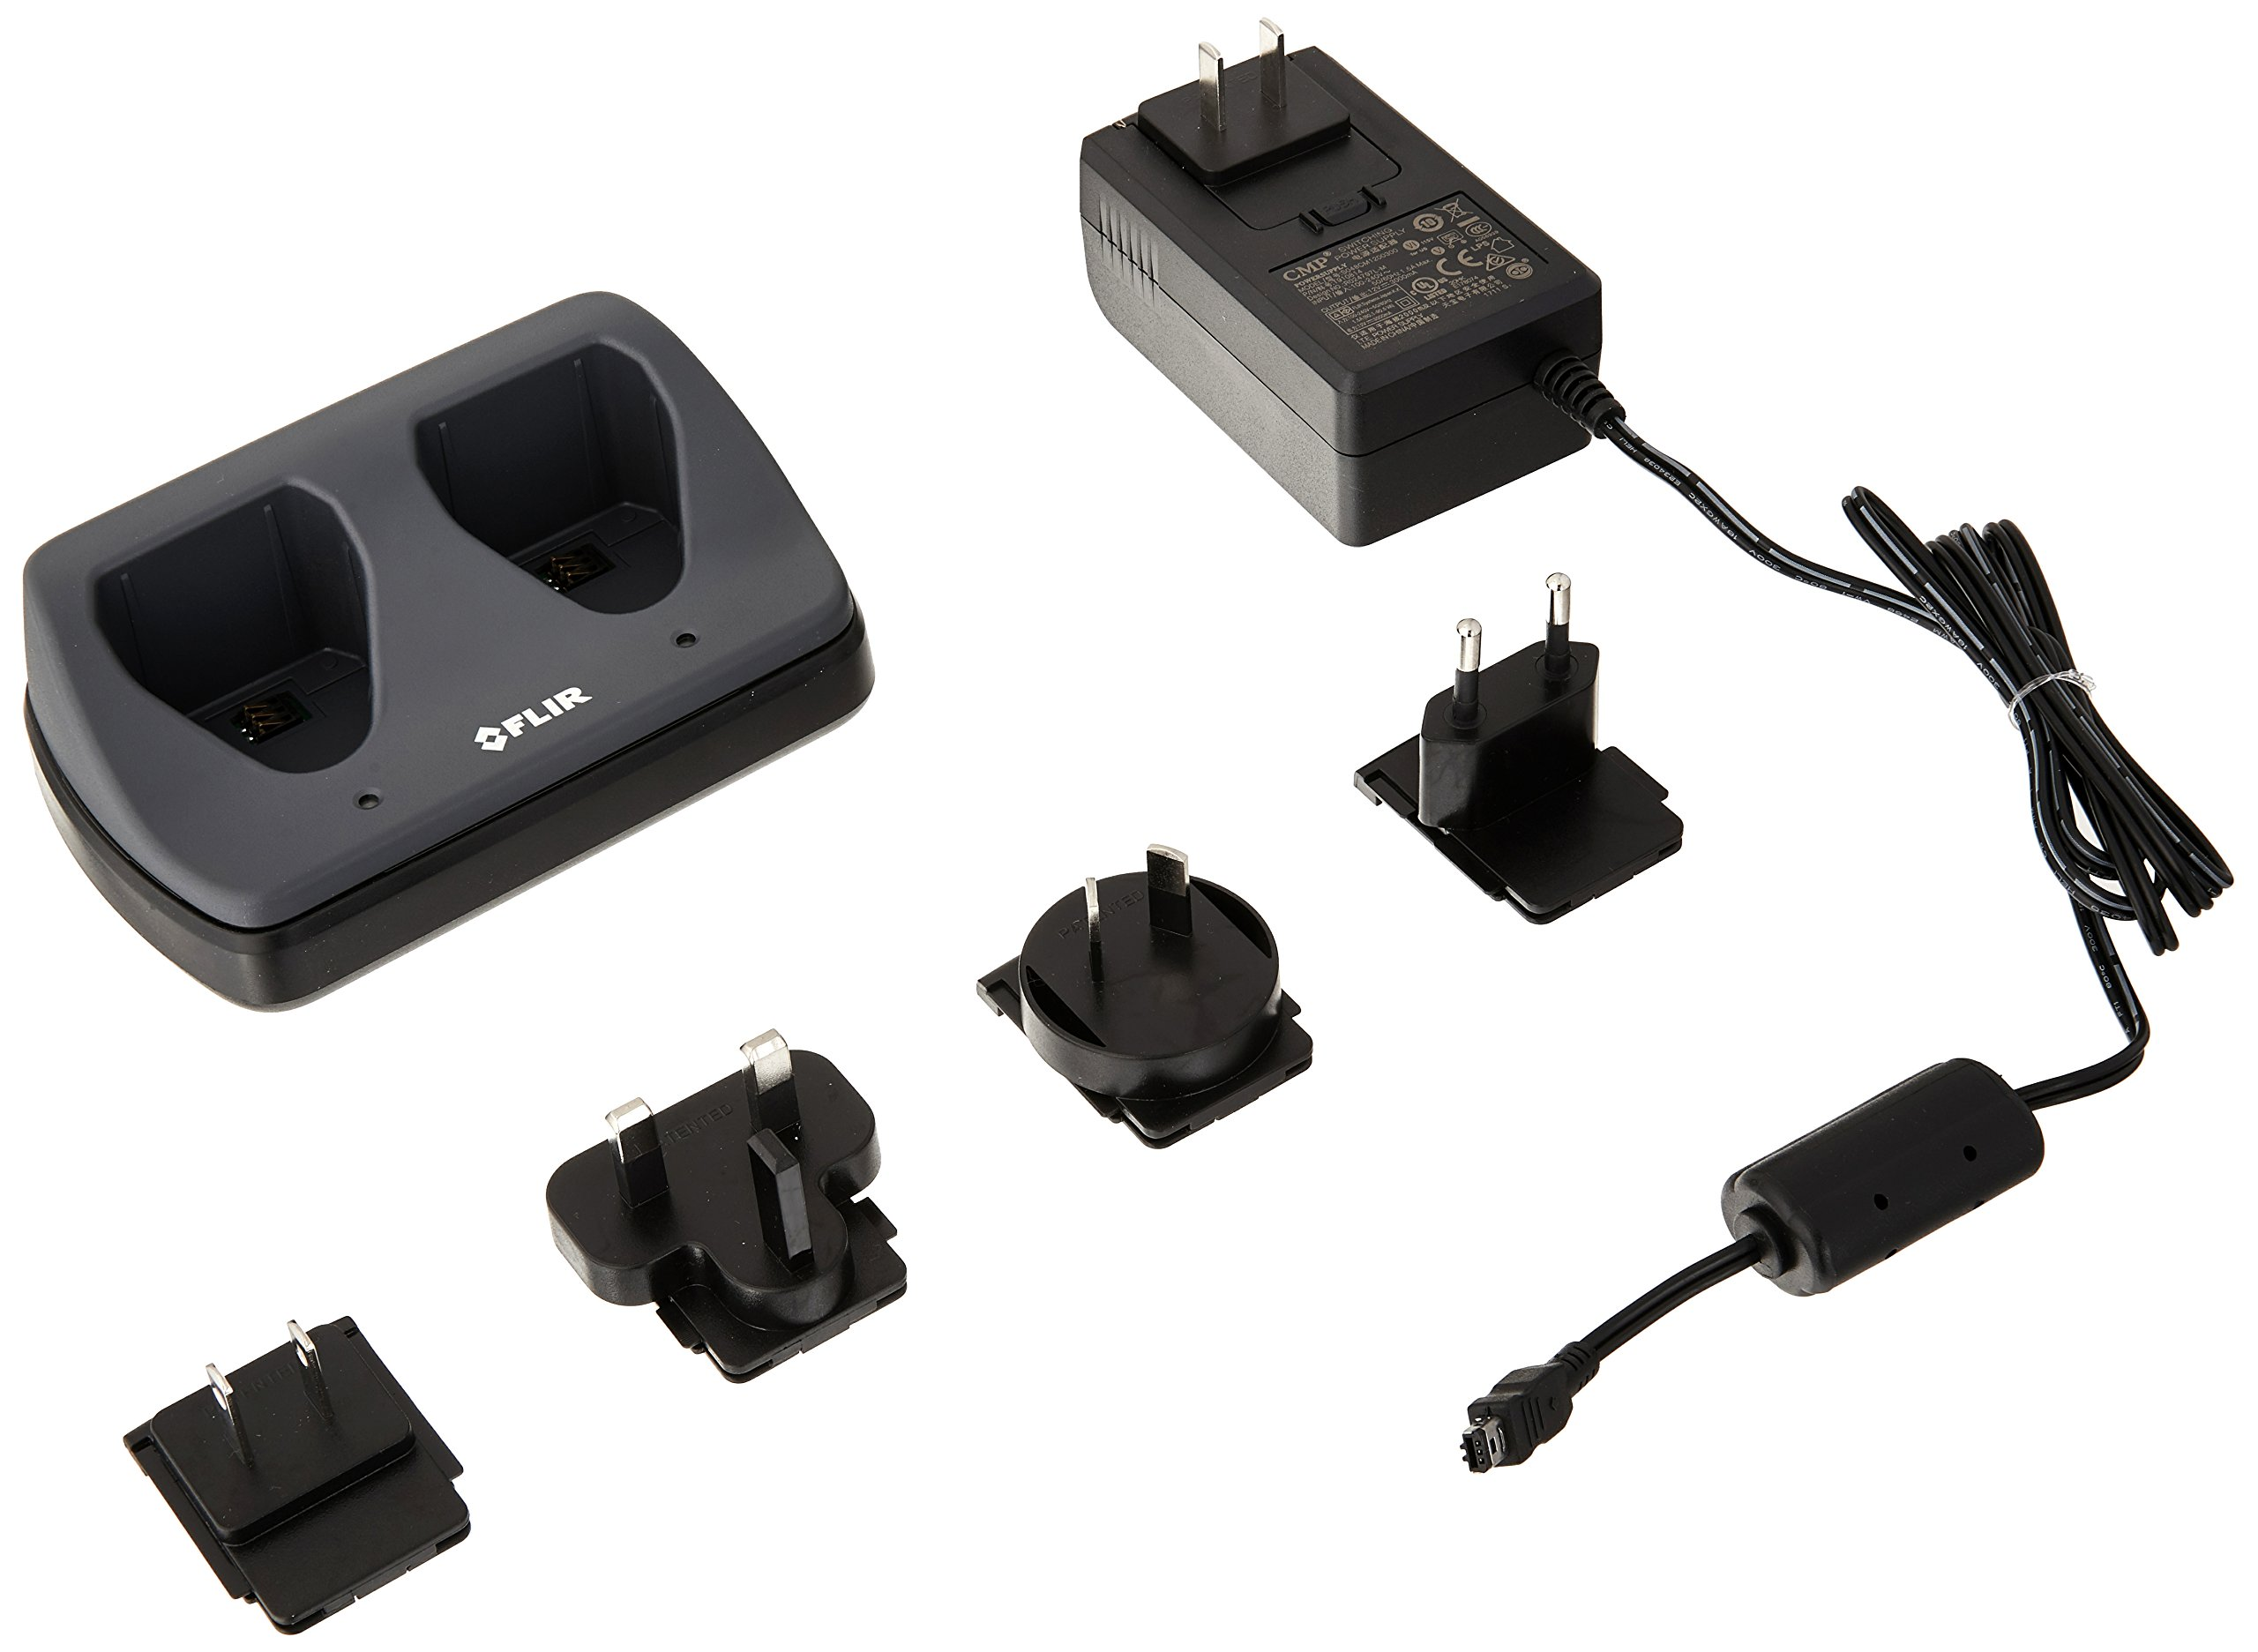 FLIR T198126 Two Bay Battery Charger for T6xx Series Thermal Cameras by FLIR